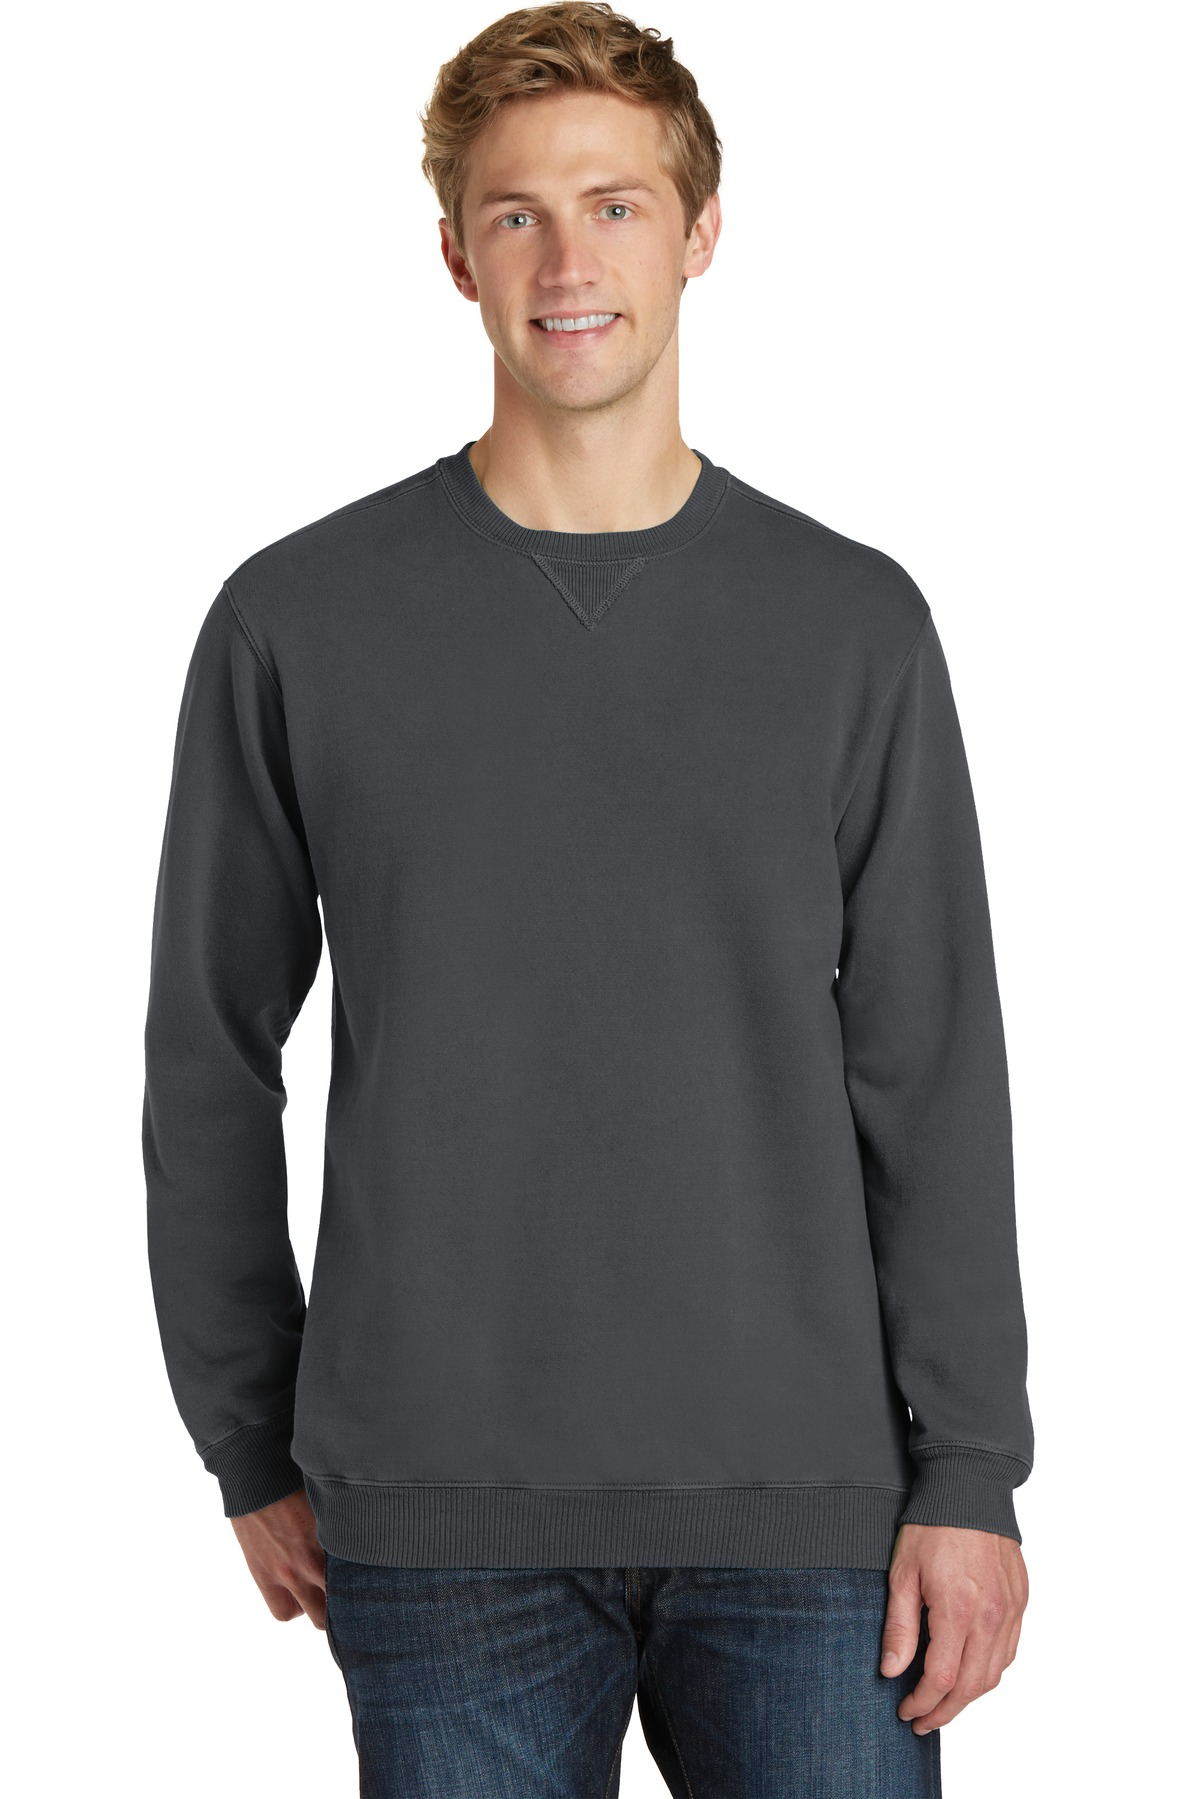 Port & Company ®  Beach Wash ™  Garment-Dyed Sweatshirt PC098 - Coal